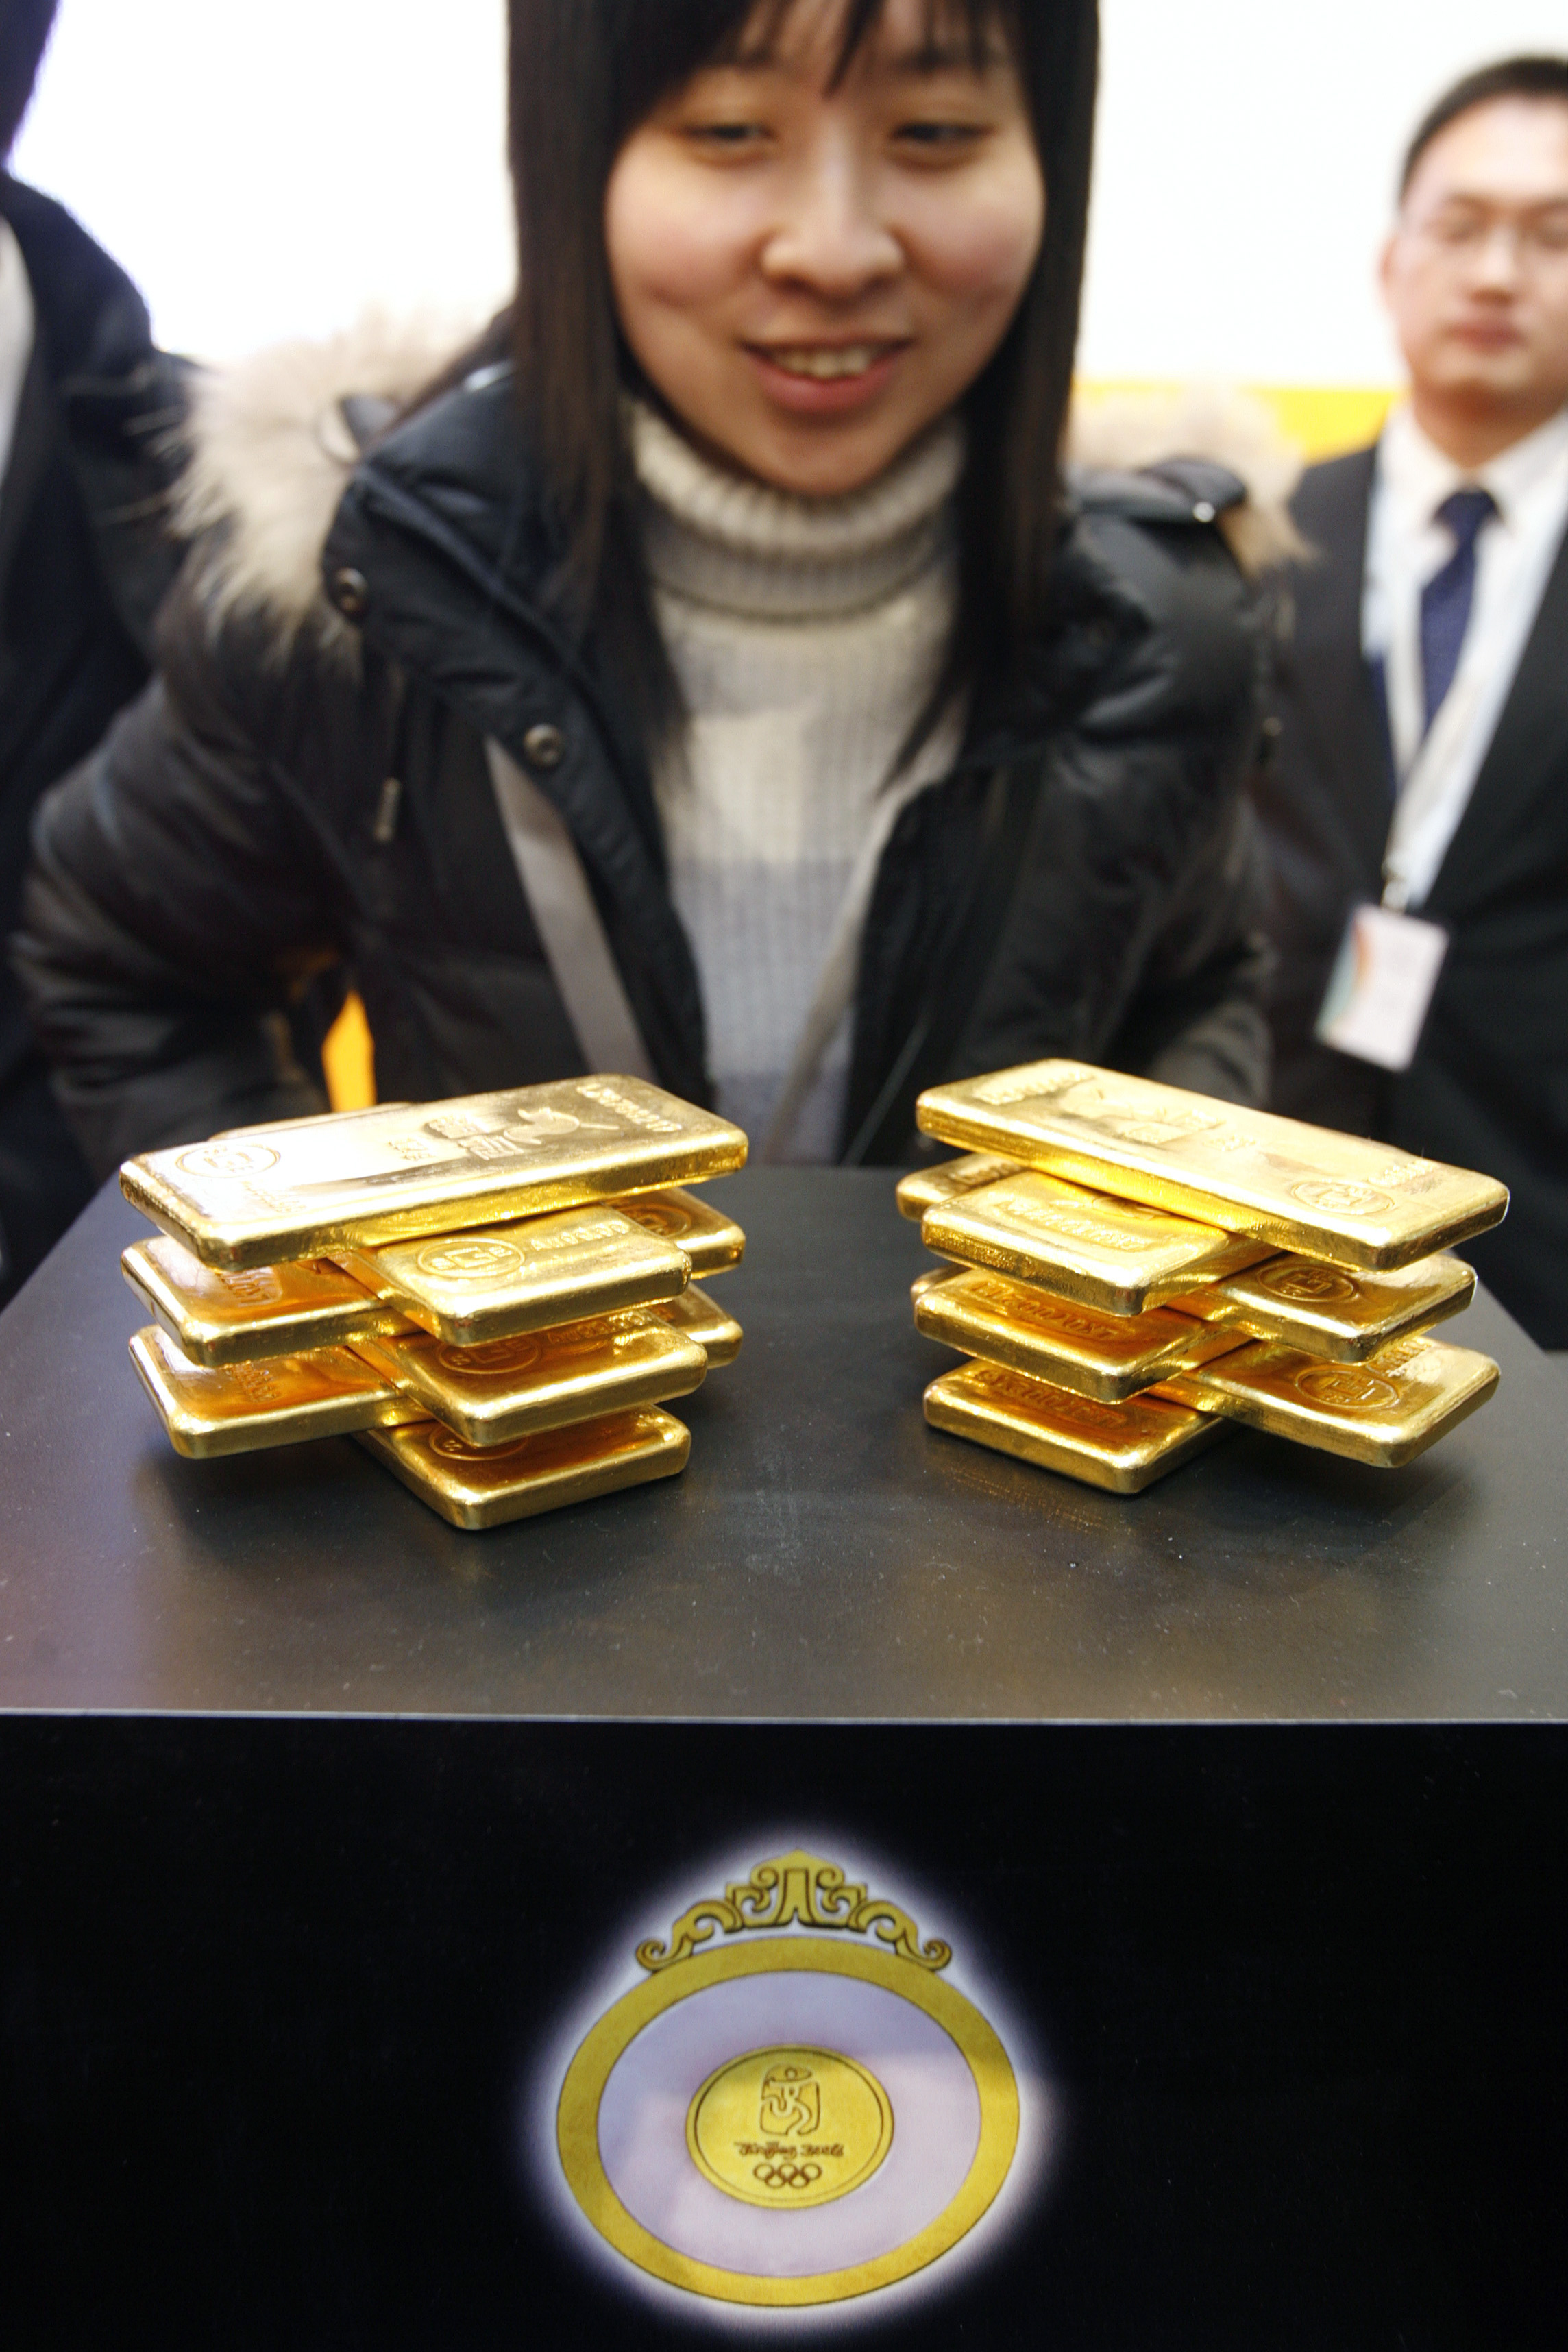 A woman looks at gold bars during a handover ceremony in Shanghai